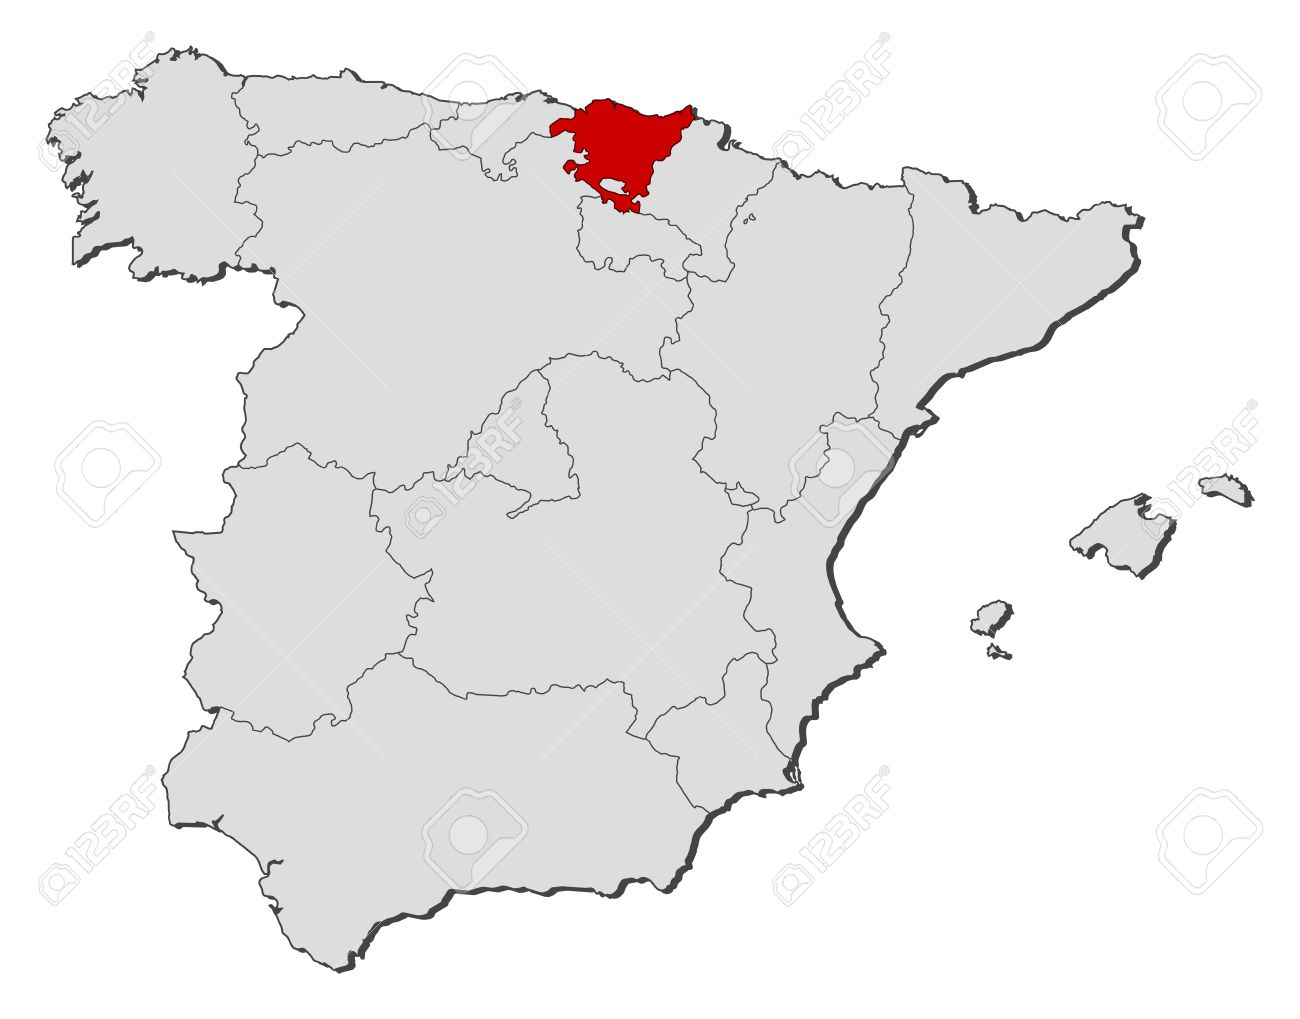 https://previews.123rf.com/images/schwabenblitz/schwabenblitz1111/schwabenblitz111101241/11346107-Political-map-of-Spain-with-the-several-regions-where-Basque-Country-is-highlighted--Stock-Vector.jpg